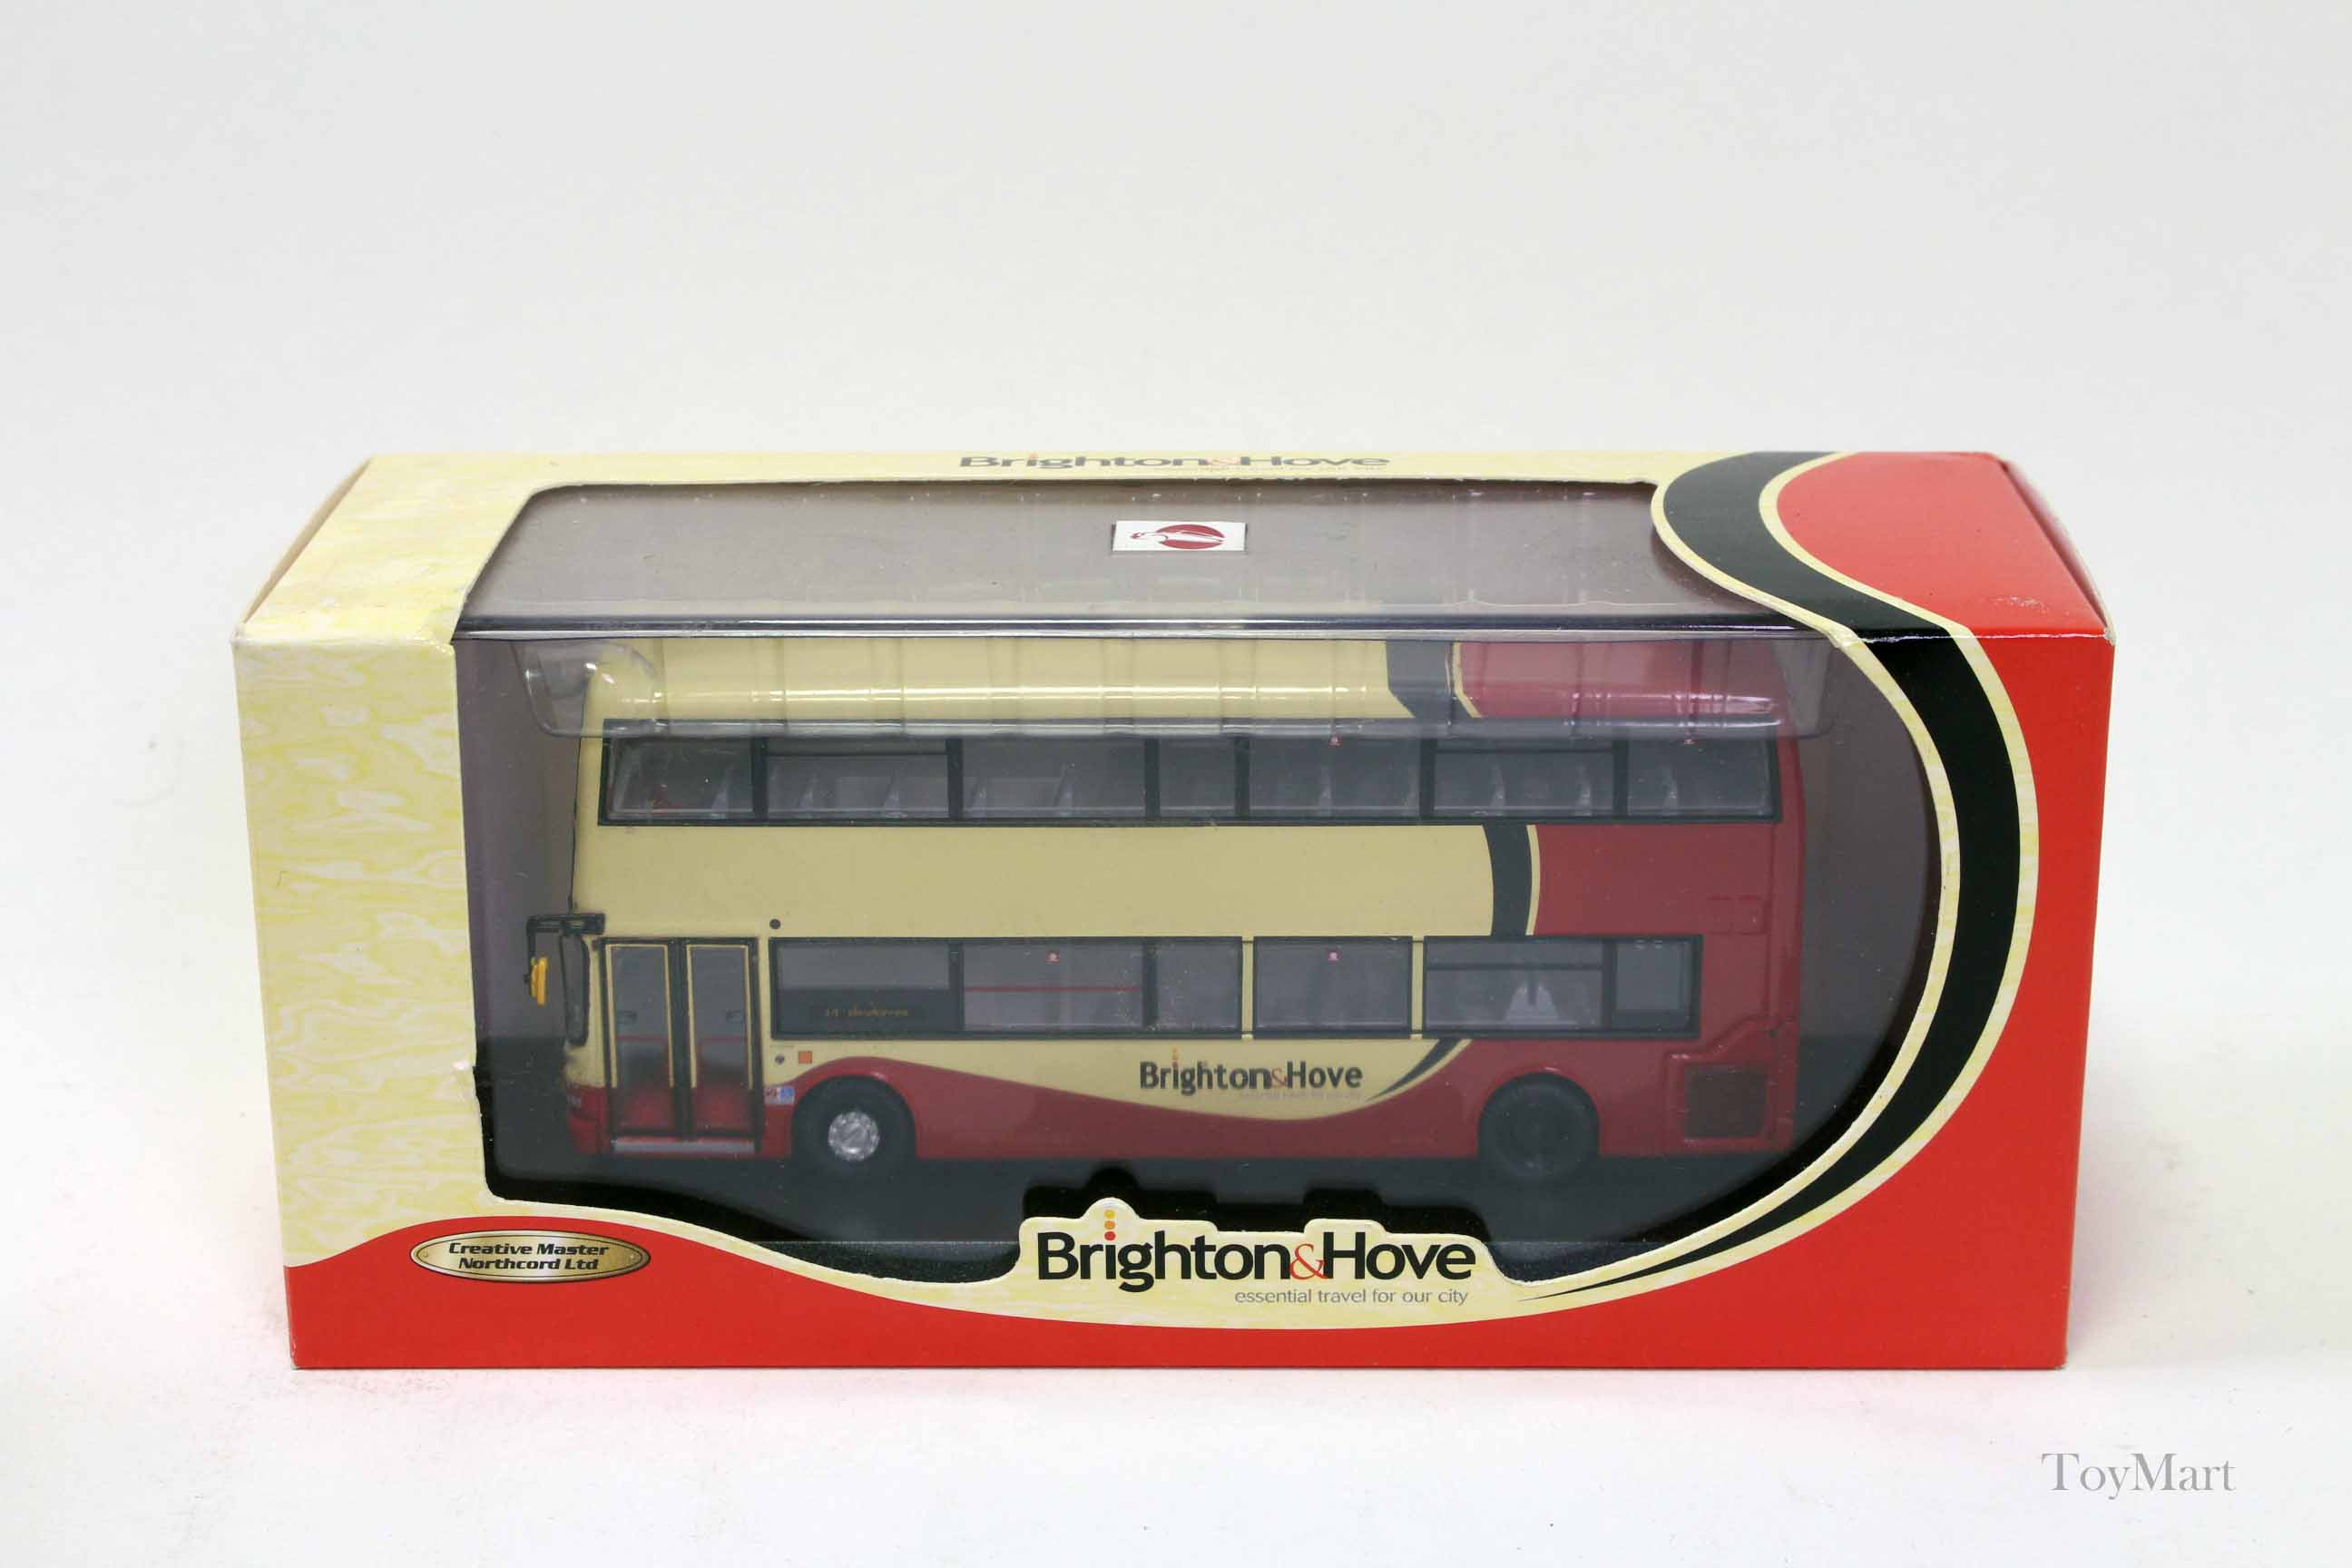 Picture Gallery for Creative Master UKBUS1032 Trident Alexander